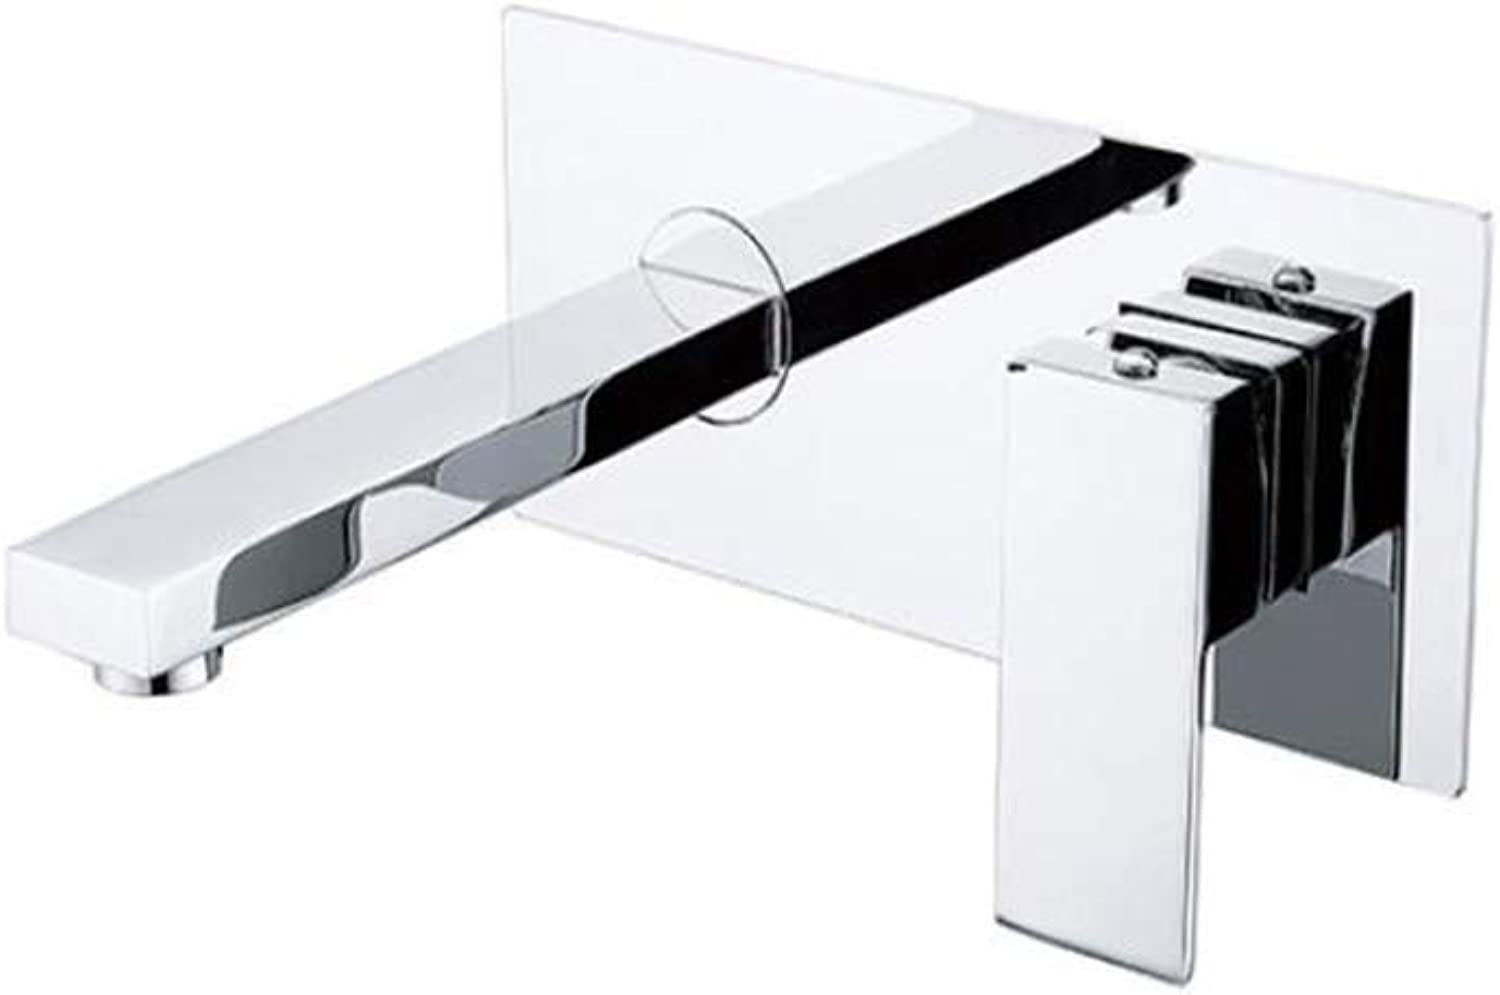 GCCLCF In-wall concealed faucet with pre-embedded hot and cold water faucet